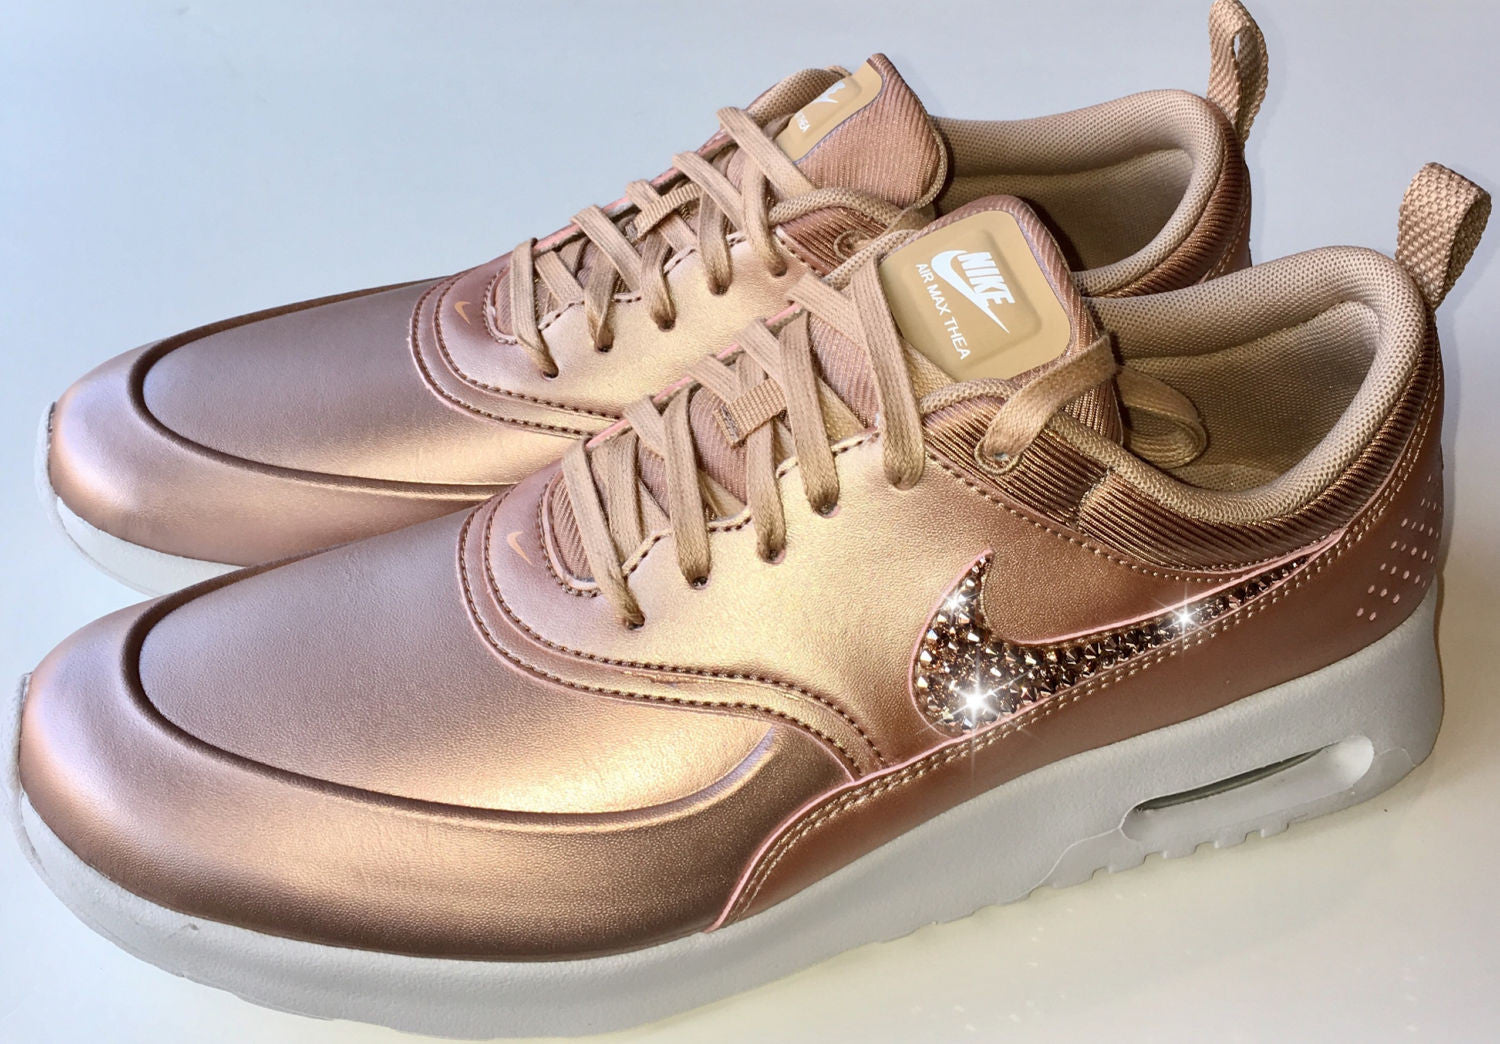 098c0c498b39 ... ROSE GOLD Bling Nike Air Max Thea Metallic SE Shoes with Swarovski  Crystals   Bedazzled with ...